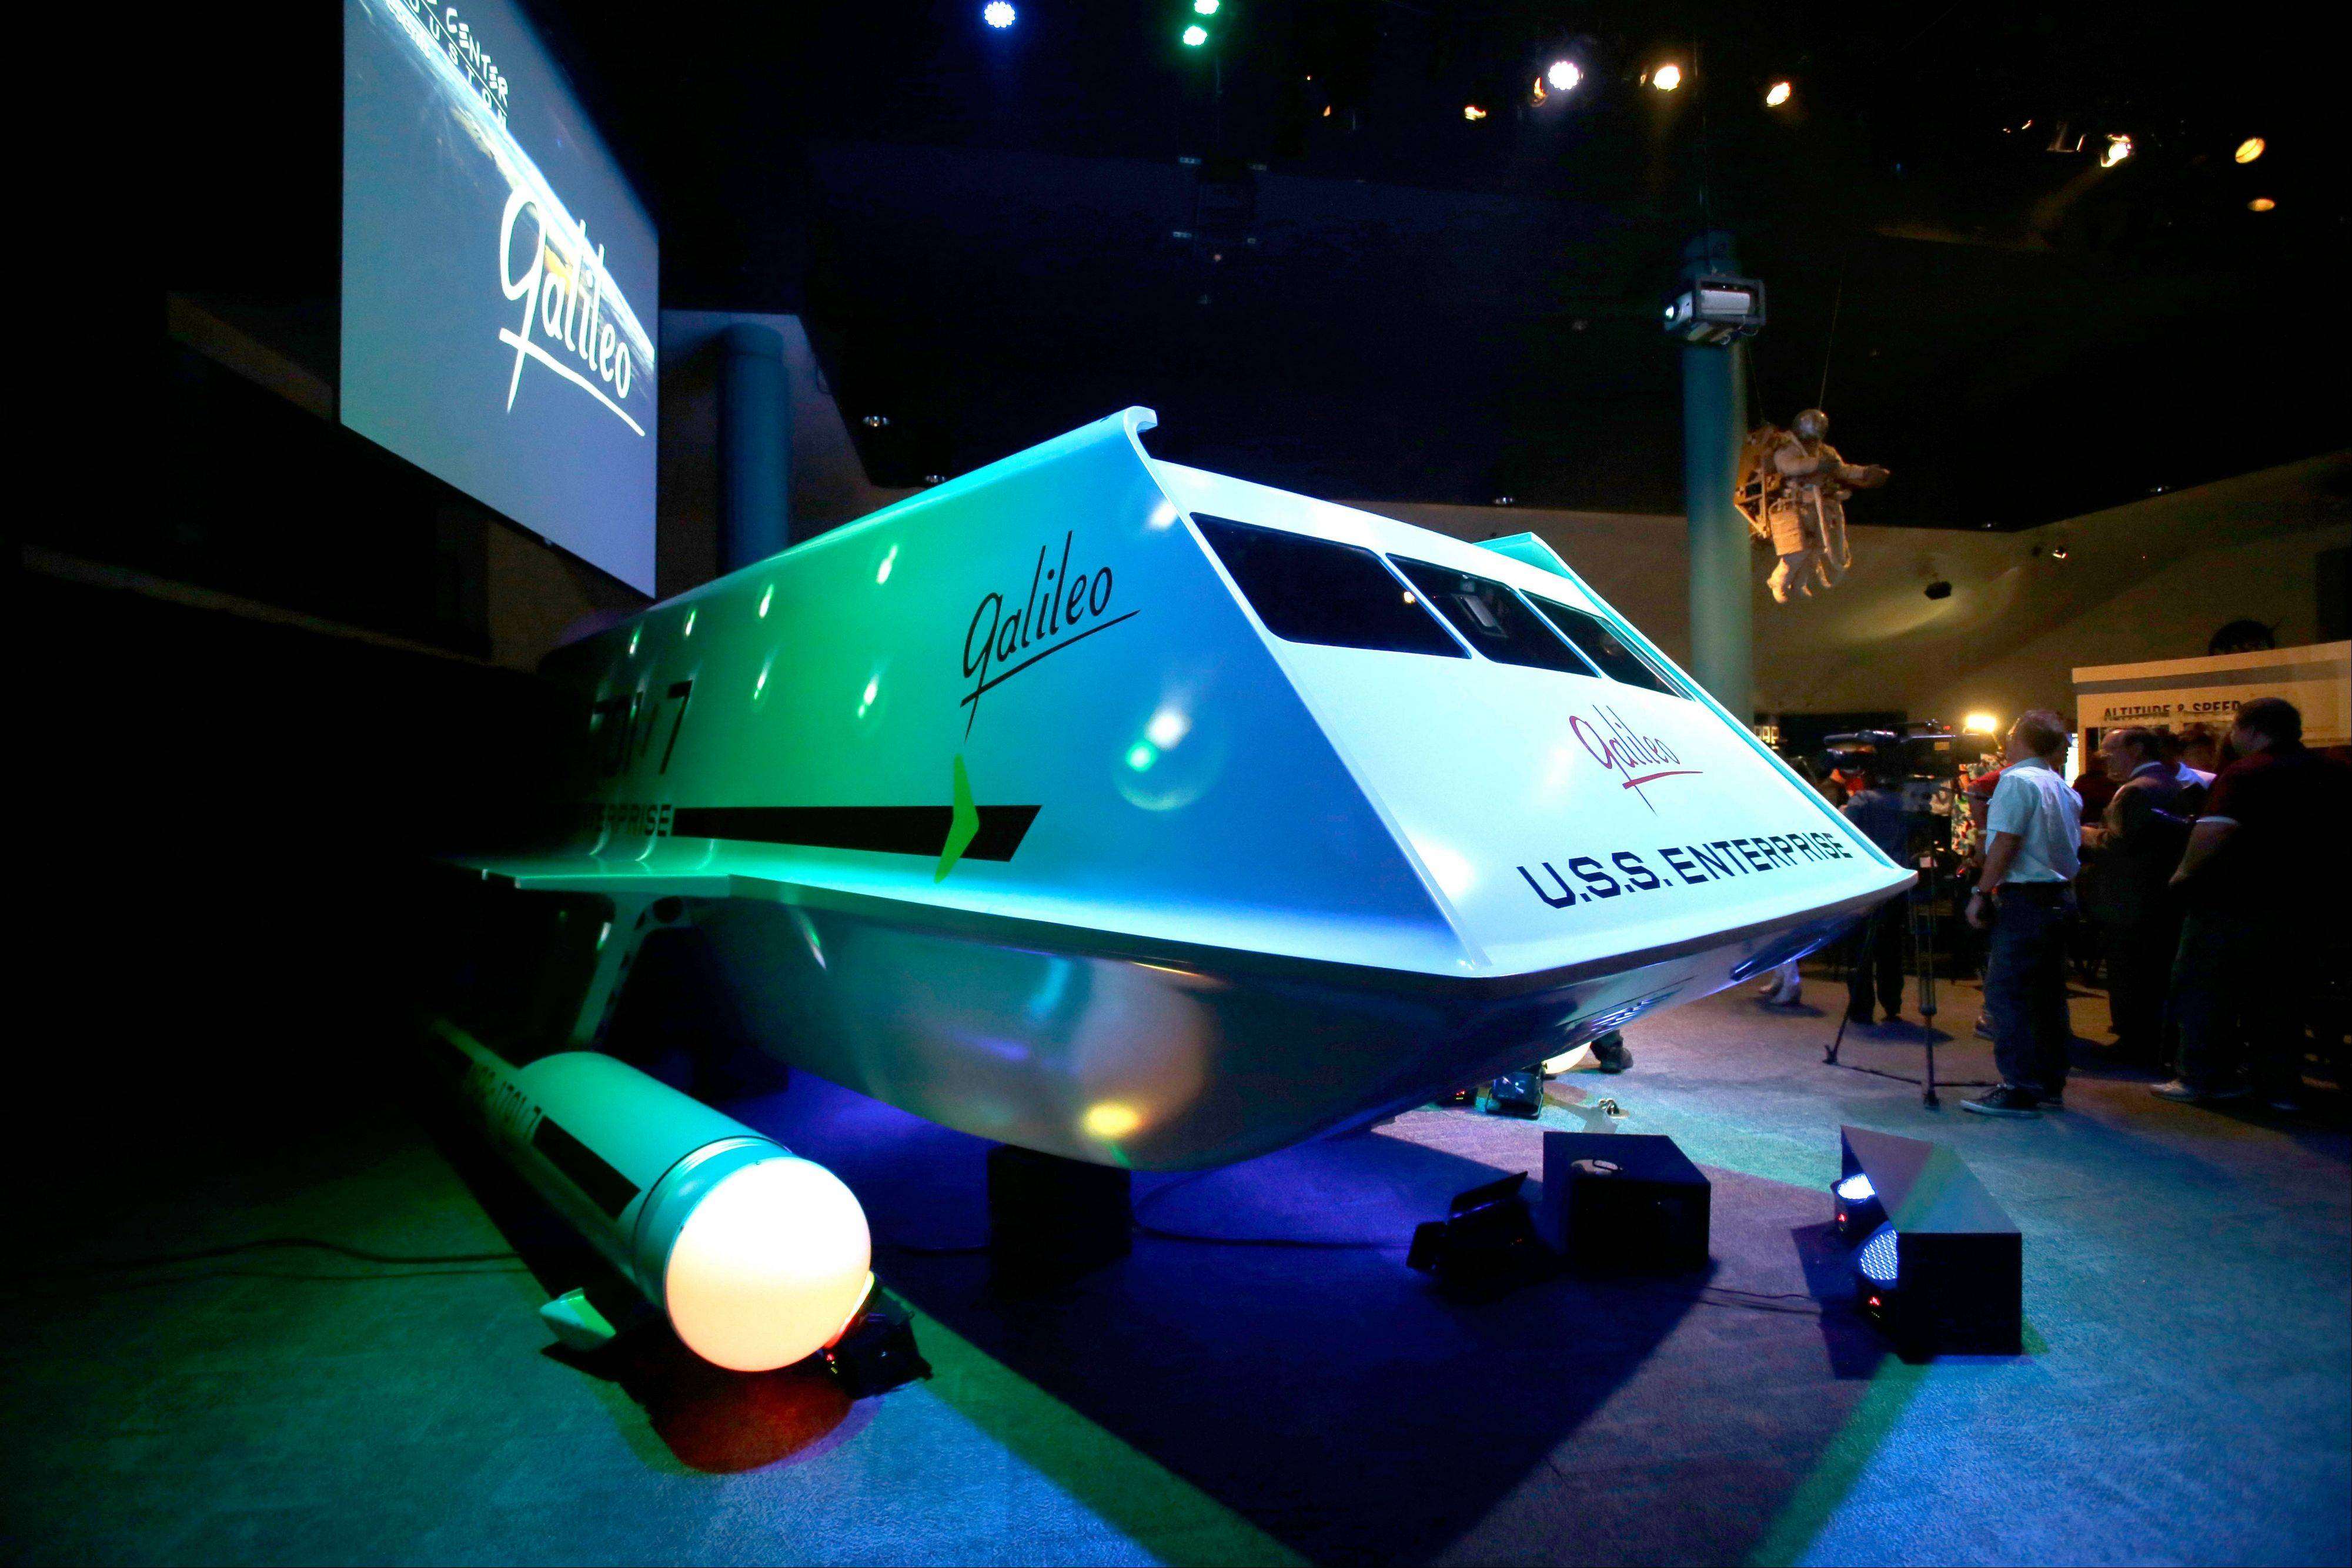 The restored space shuttle Galileo from the 1960�s television show �Star Trek� is unveiled at Space Center Houston in Houston.